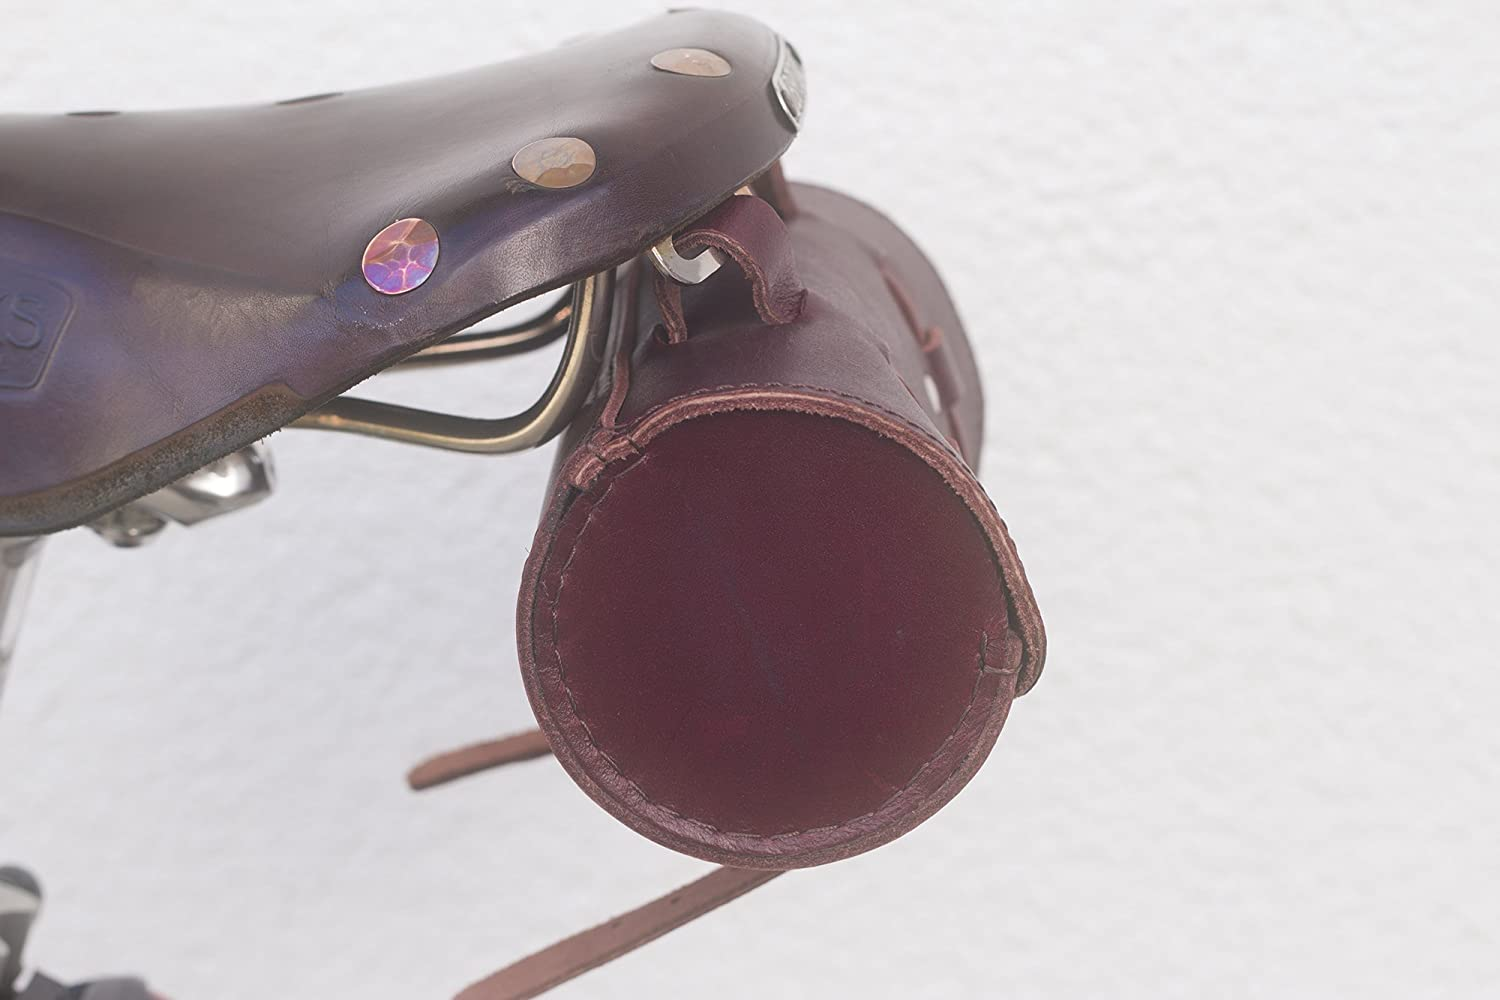 London Craftwork Classic Saddle//Handlebar Roll Bag Real Leather WINE BROWN For Bike Tools ROL-CHER